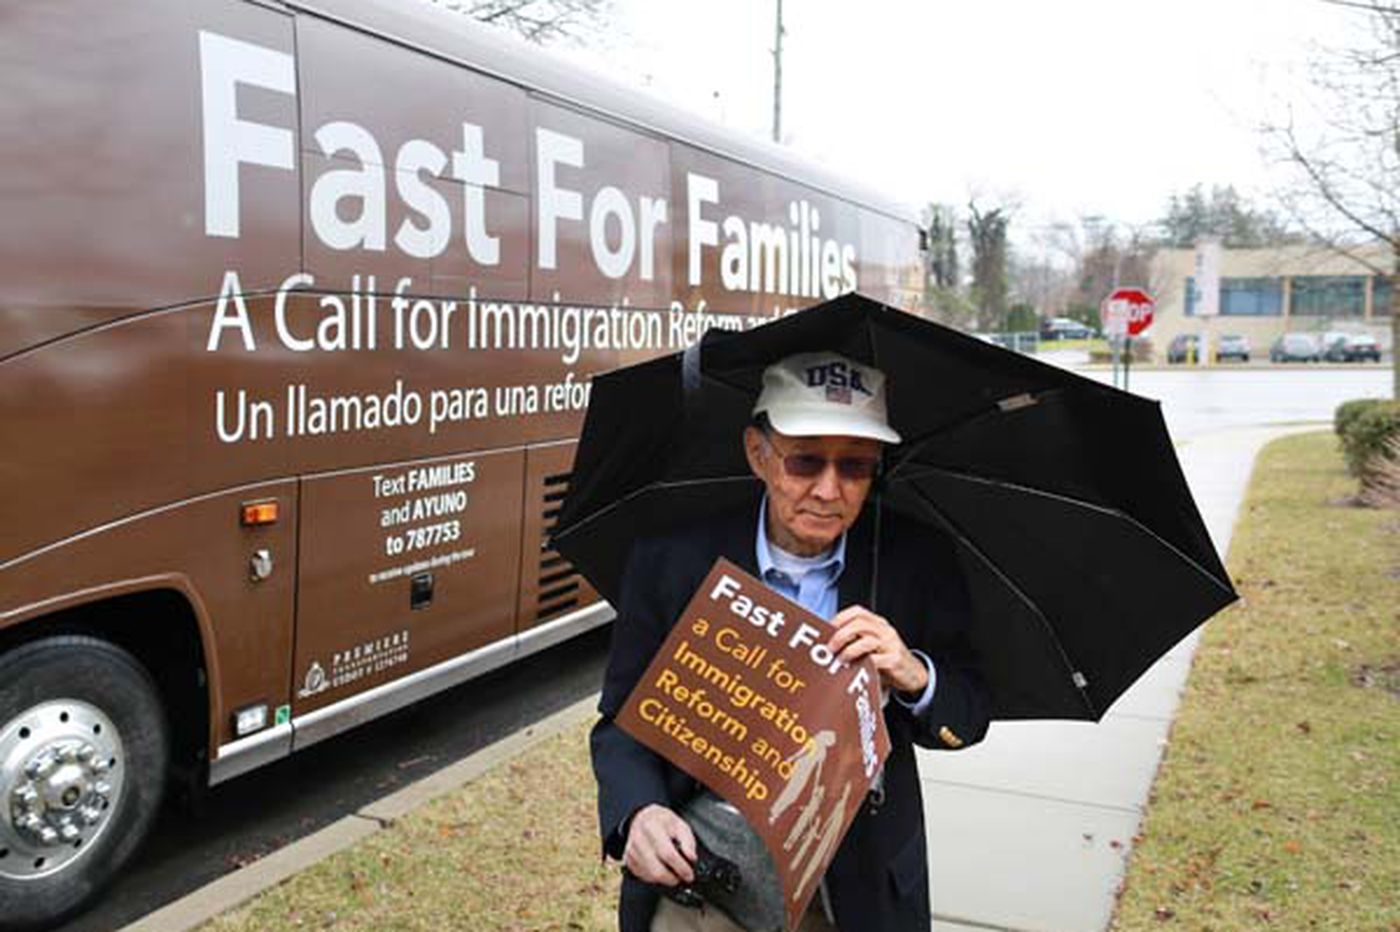 Fasting protesters press Meehan on immigration